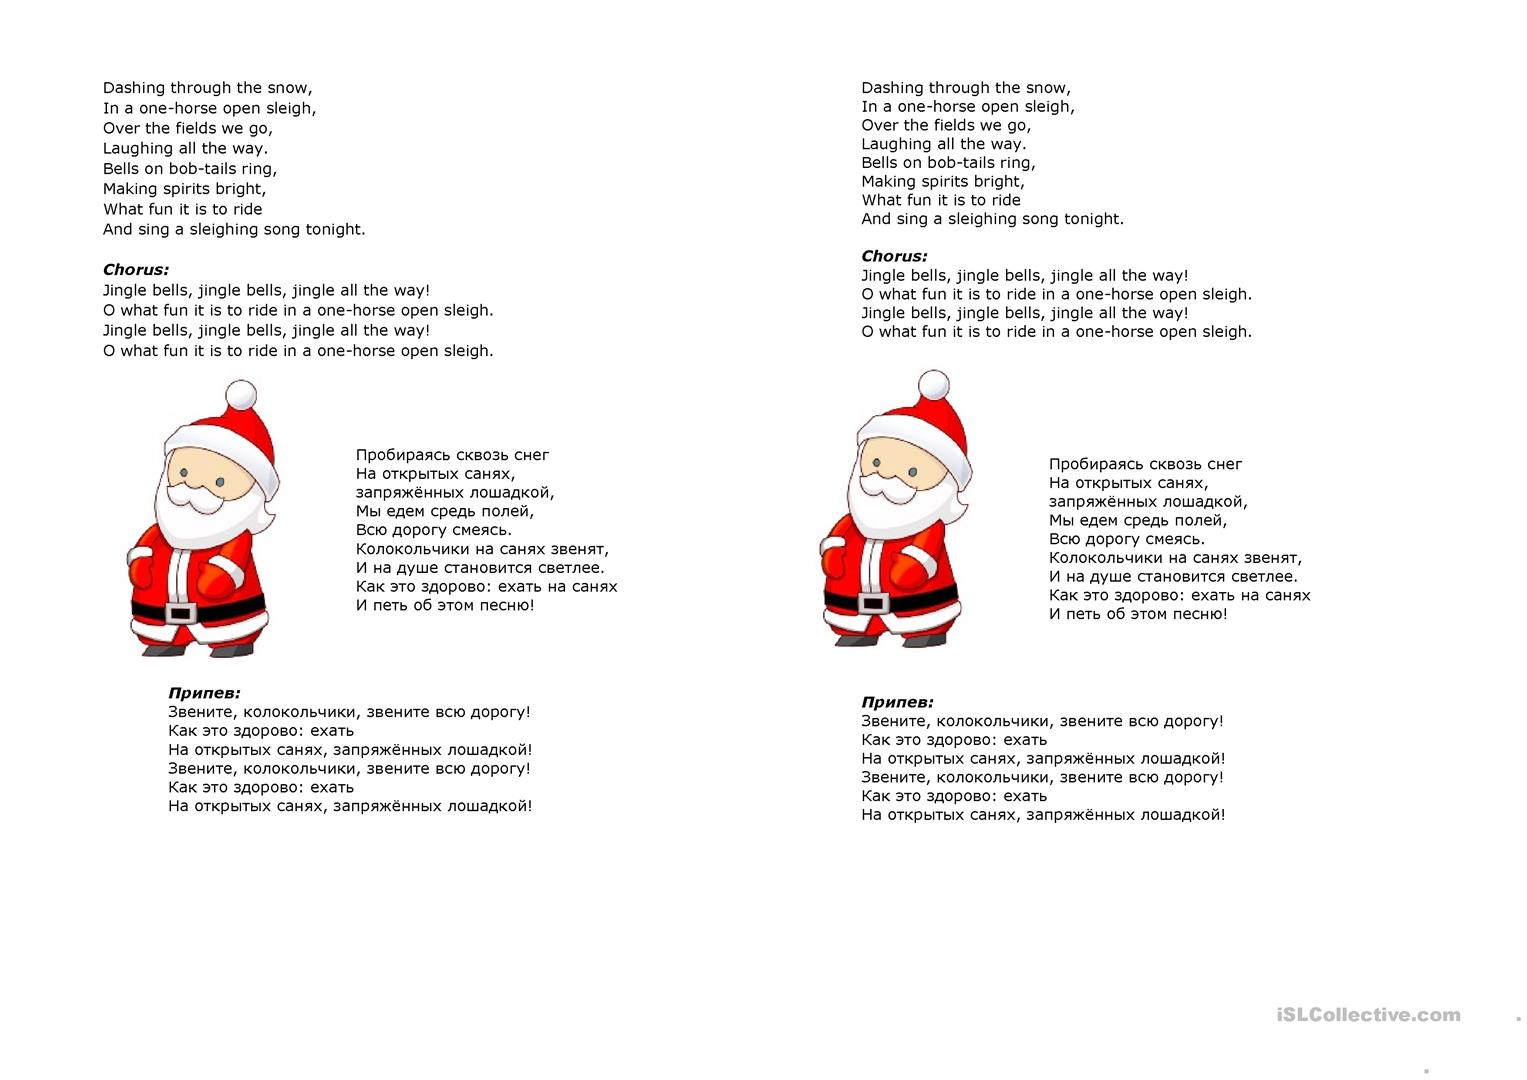 Jingle Bells Handout With The Translation Into Russian